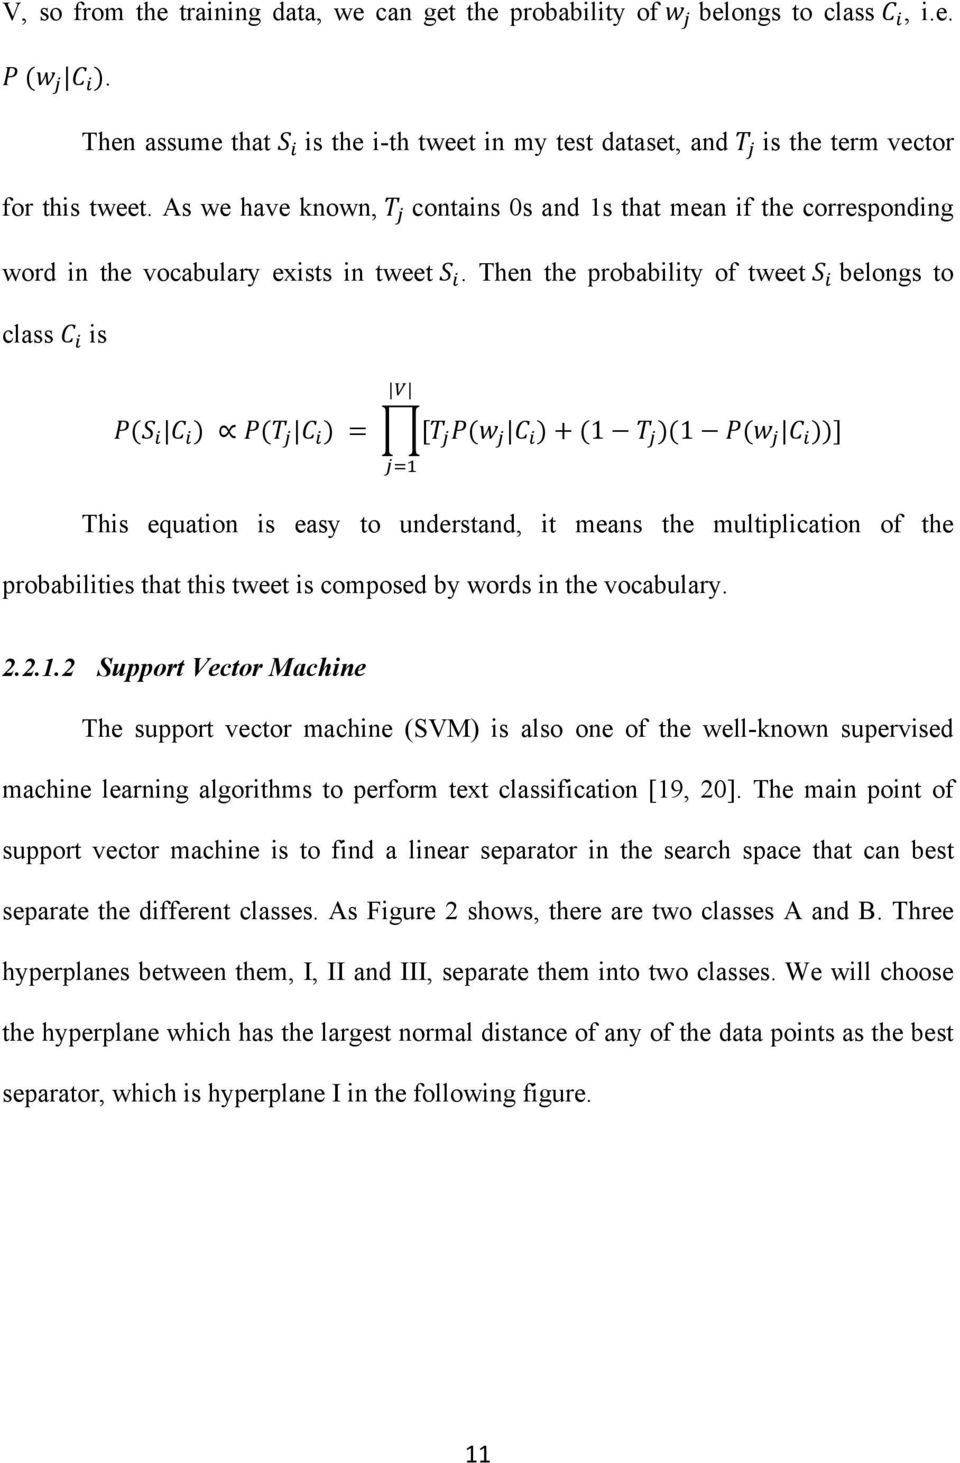 P(w! C! ) + (1 T! )(1 P(w! C! ))]!!! This equation is easy to understand, it means the multiplication of the probabilities that this tweet is composed by words in the vocabulary. 2.2.1.2 Support Vector Machine The support vector machine (SVM) is also one of the well-known supervised machine learning algorithms to perform text classification [19, 20].